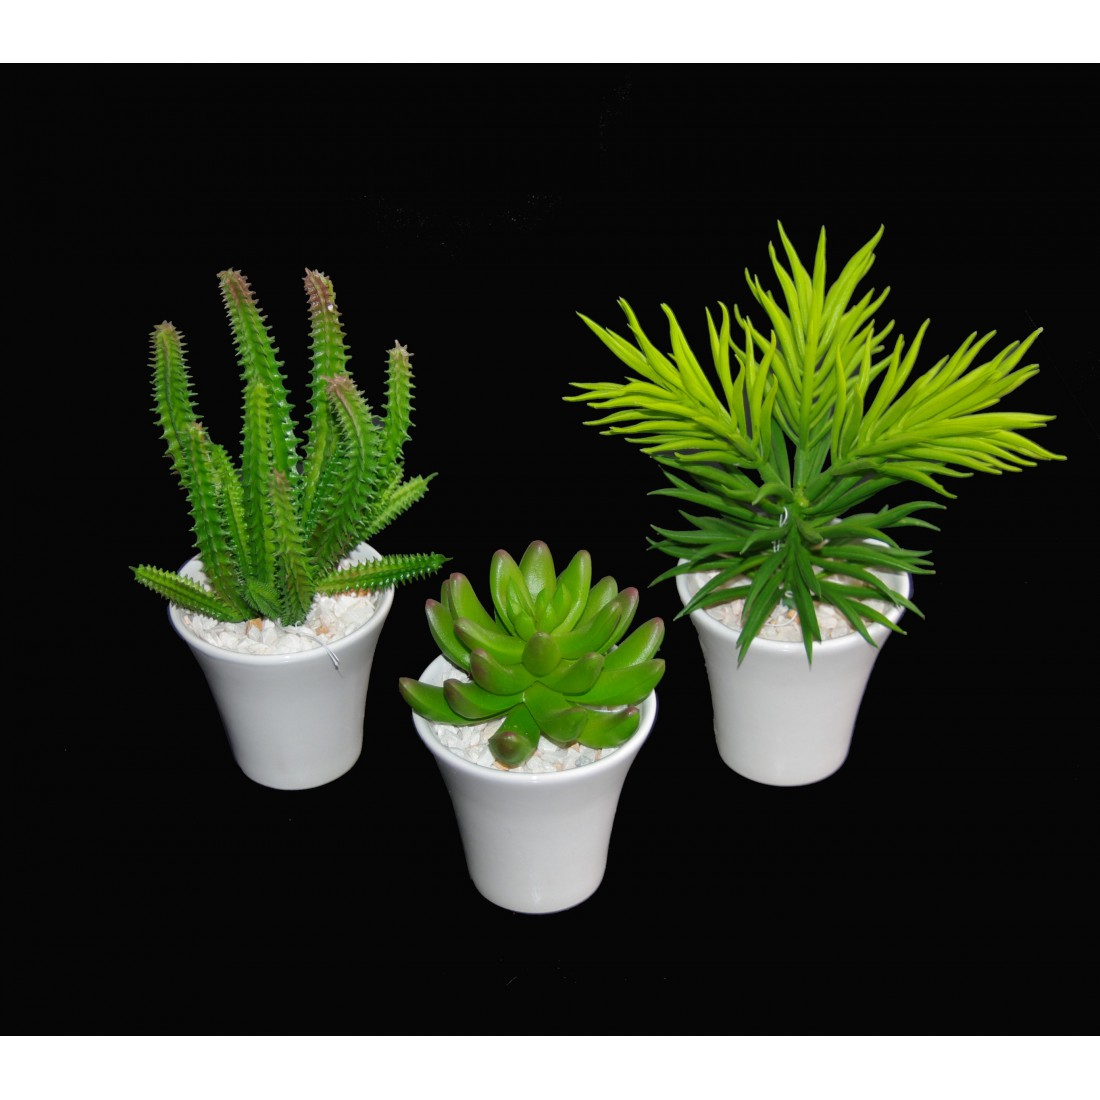 cactus artificiel en pot 18 cm mini cactus plantes grasses artificiels reflets nature lyon. Black Bedroom Furniture Sets. Home Design Ideas